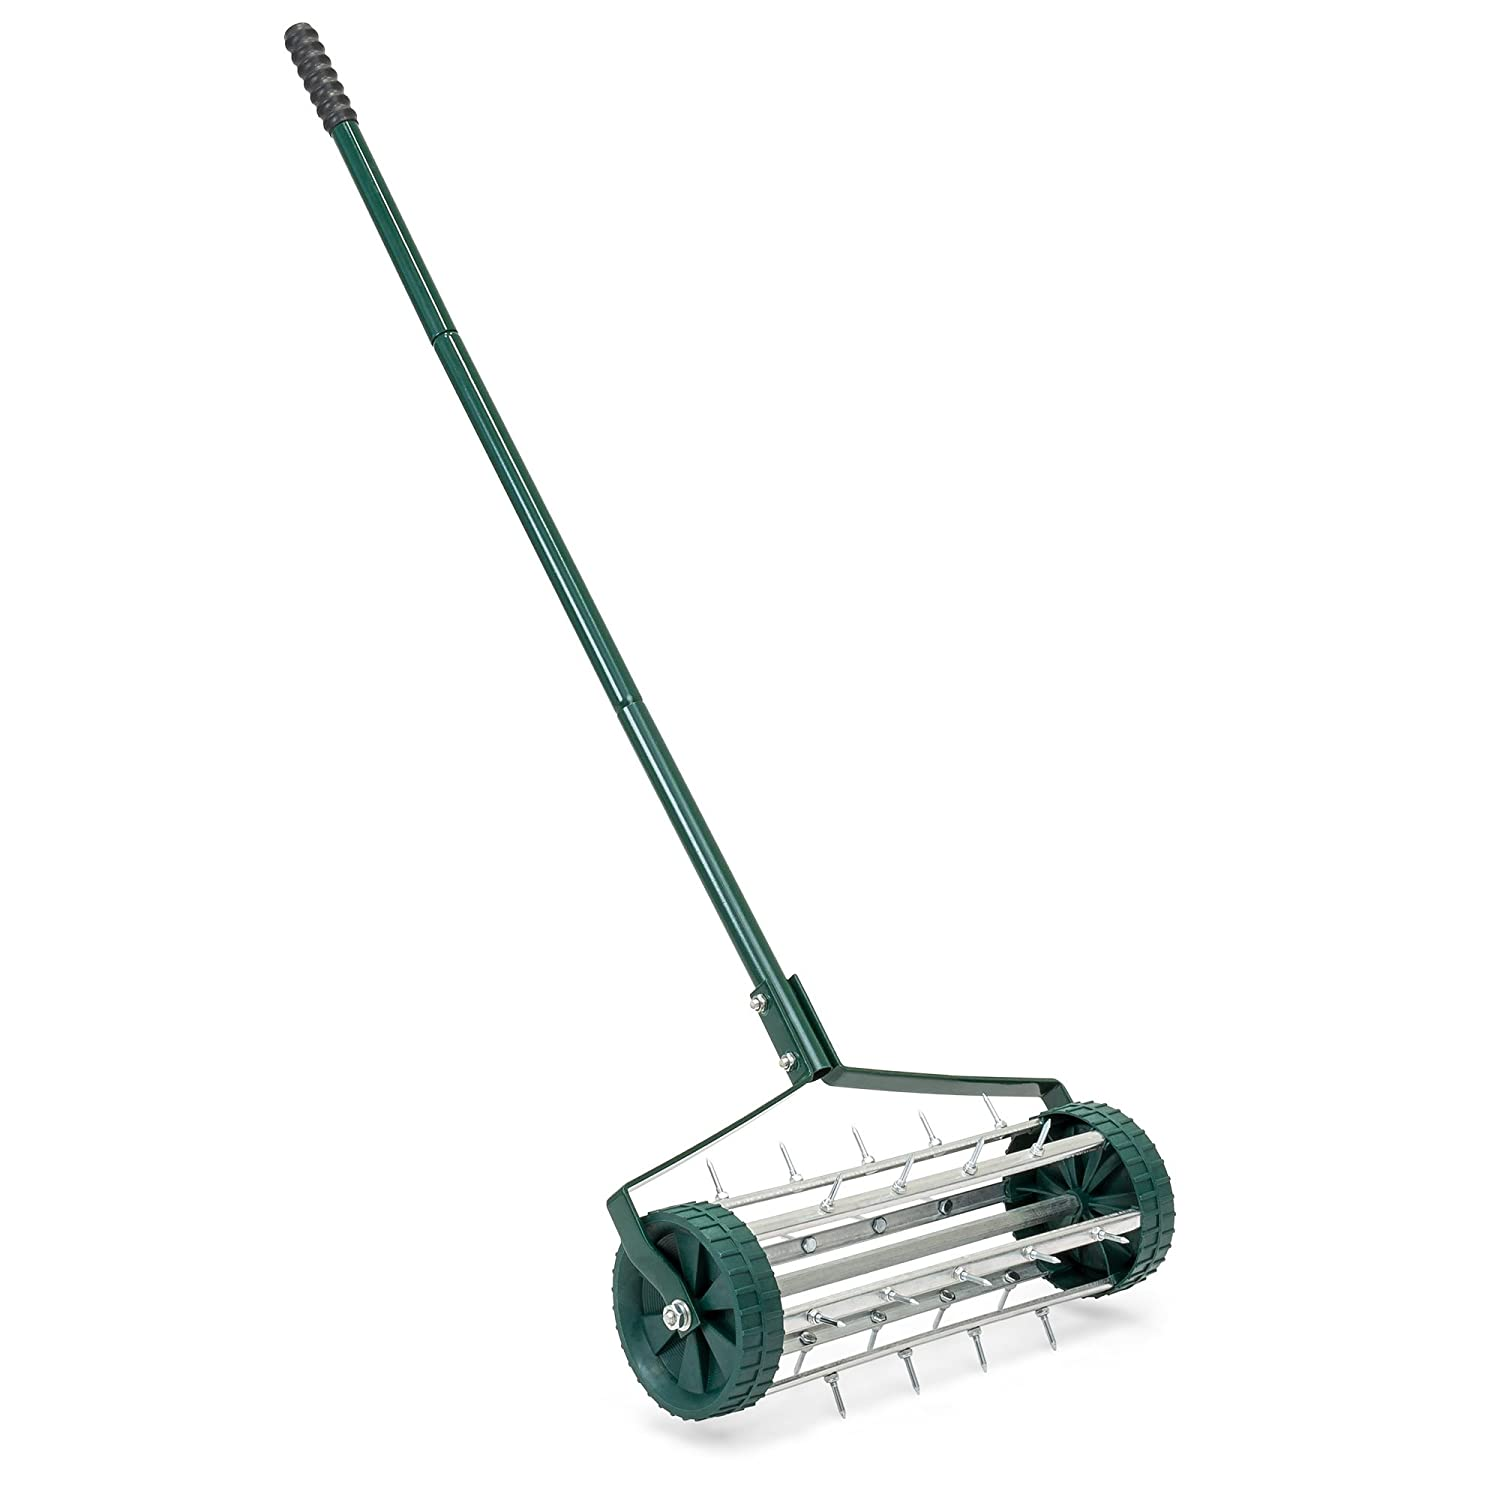 Best Choice Products 18in Rolling Lawn Aerator Gardening Tool for Grass Maintenance, Soil Care w/Tine Spikes, 50in Handle - Dark Green